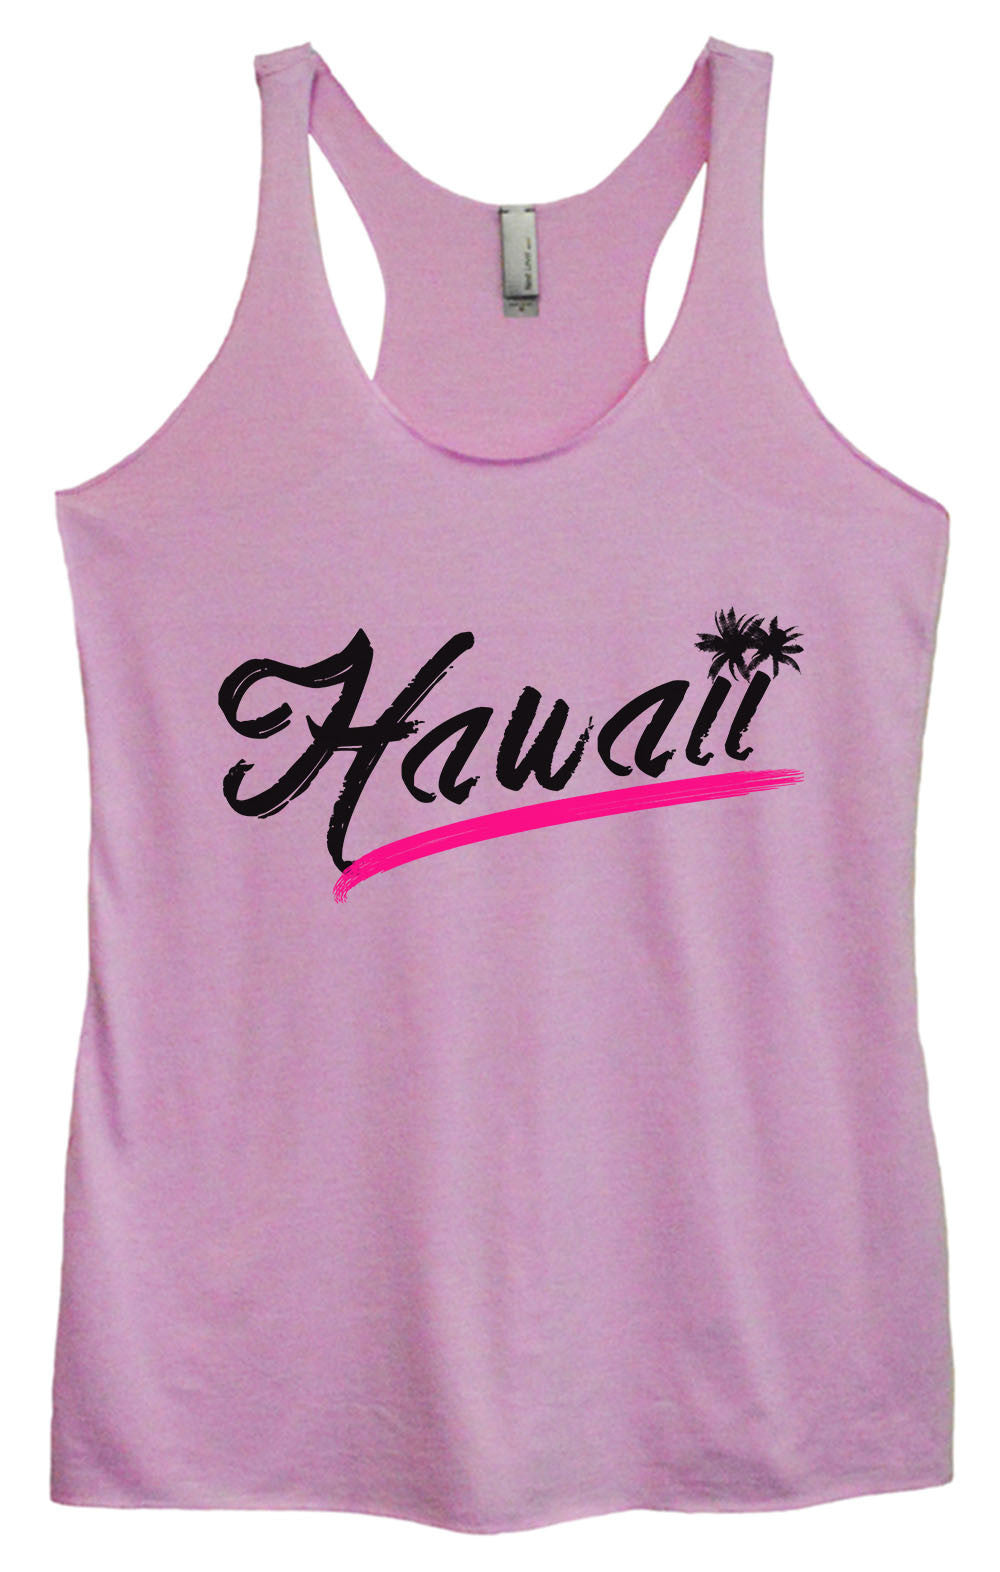 Womens Fashion Triblend Tank Top - Hawaii - Tri-1392 - Funny Shirts Tank Tops Burnouts and Triblends  - 3